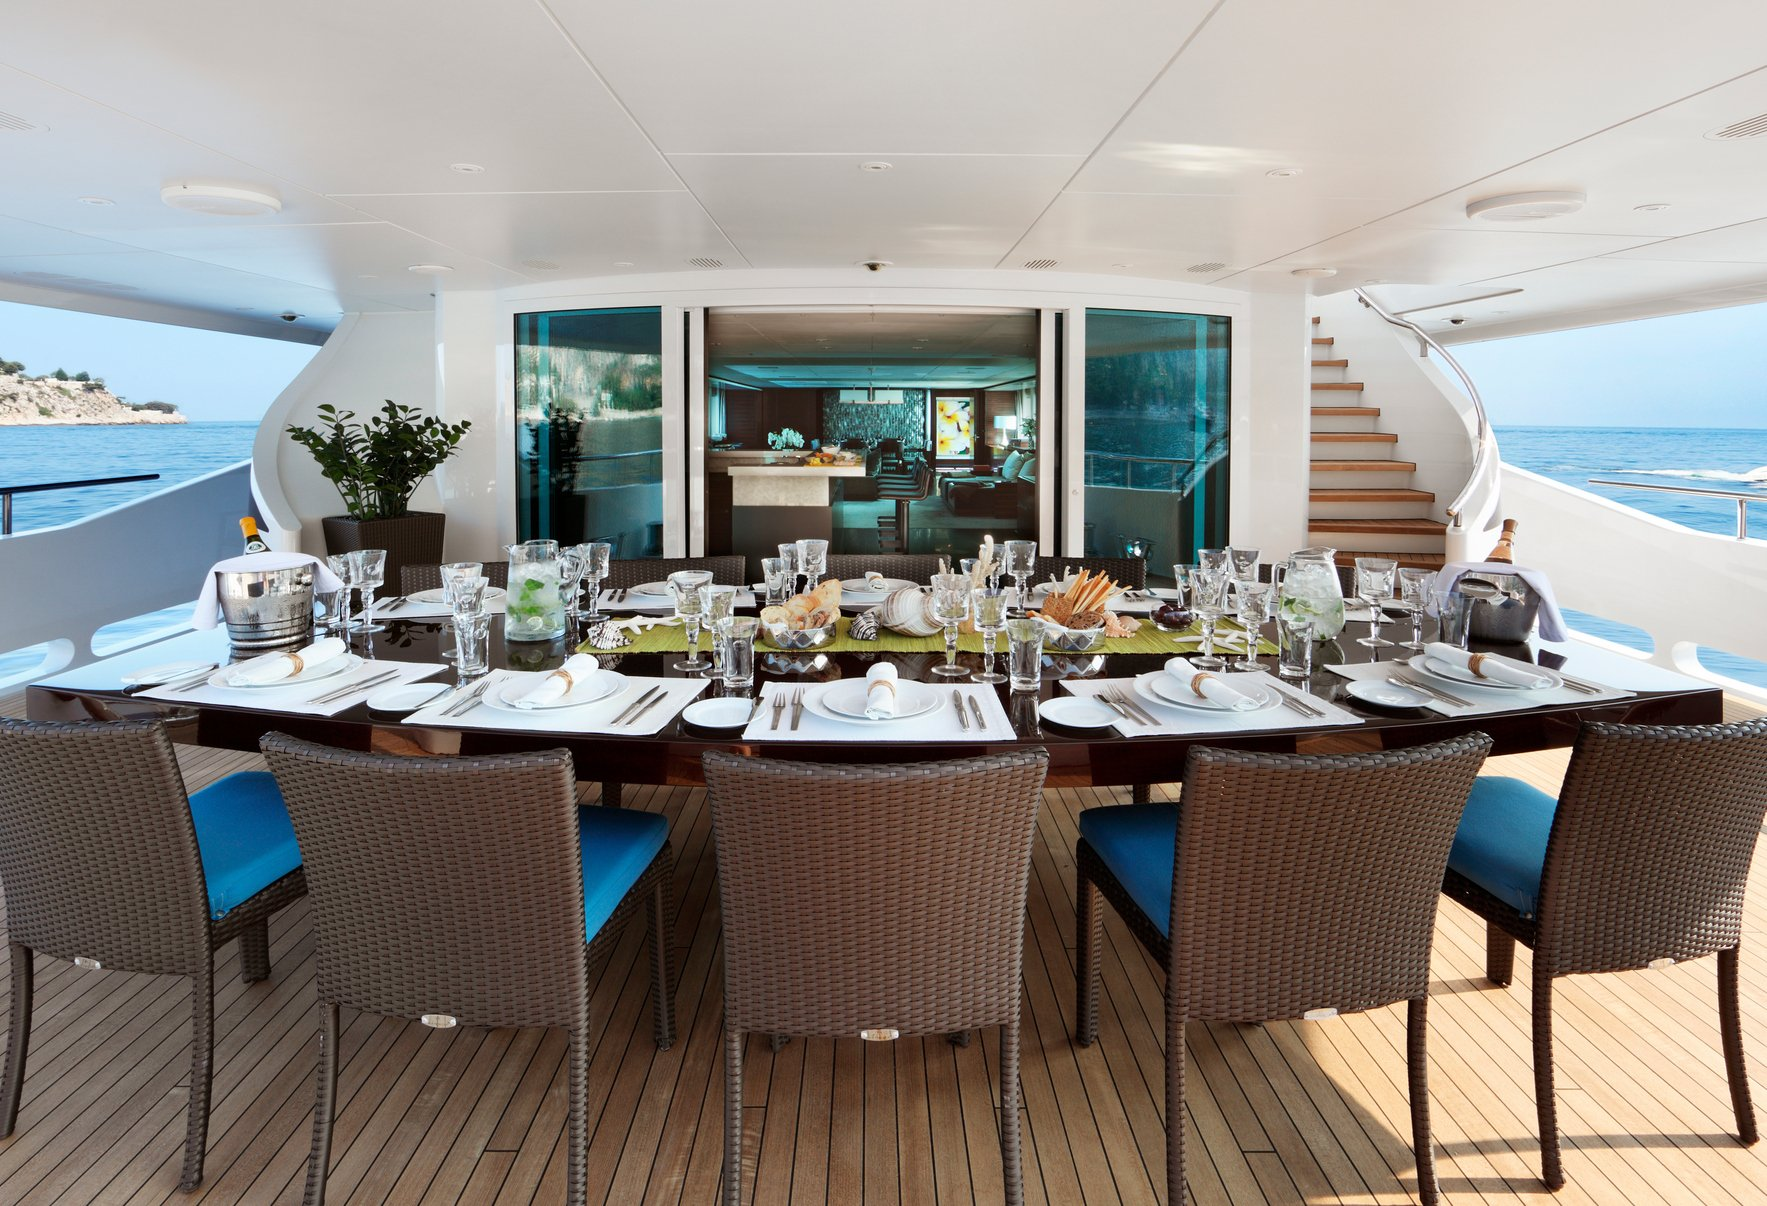 INCEPTION Aft Deck Dining